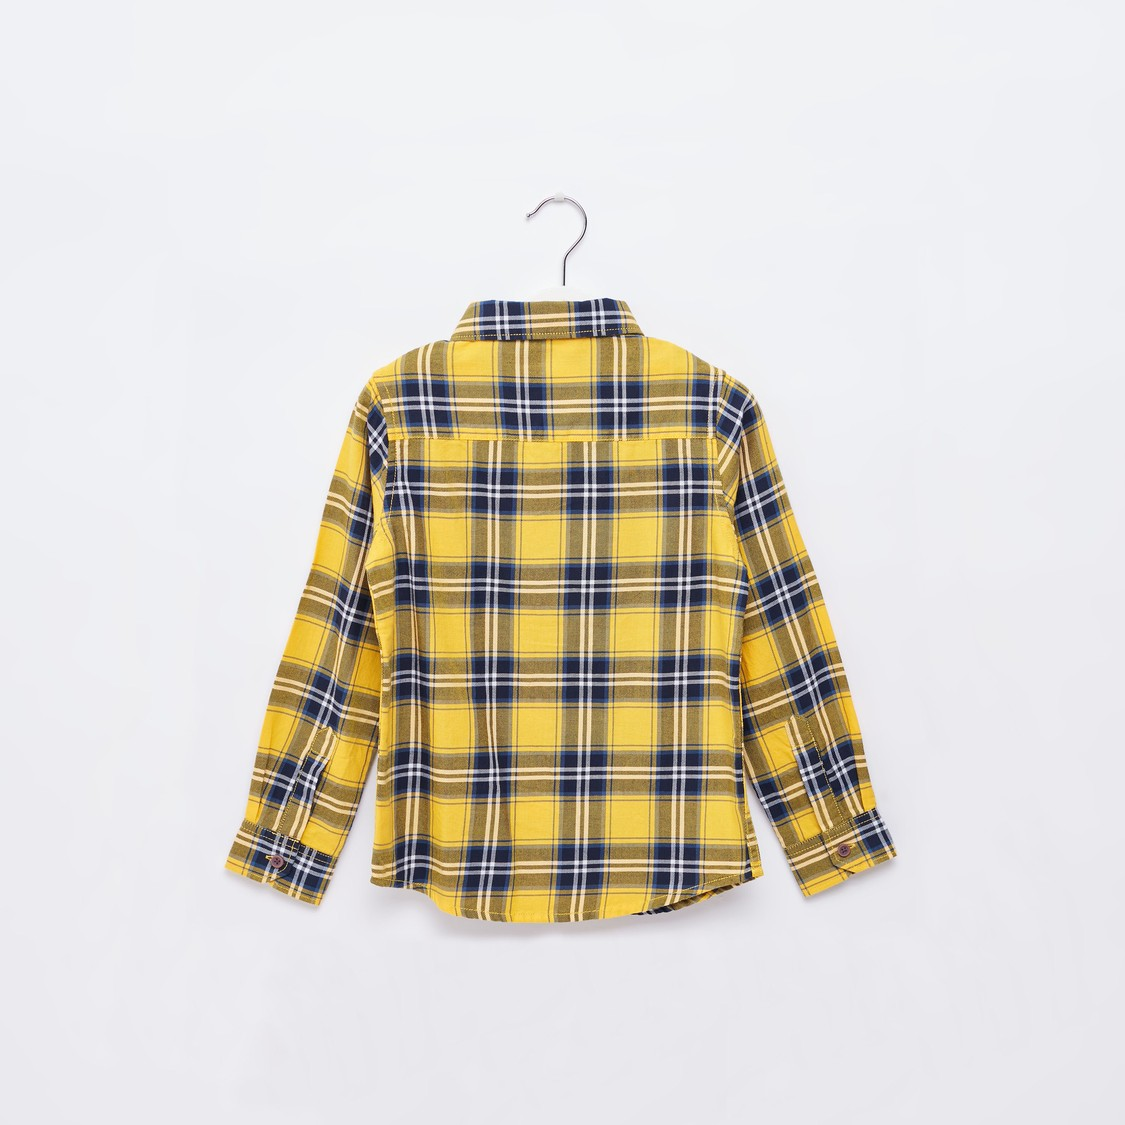 Checked Spread Collared Shirt with Long Sleeves and Patch Pocket